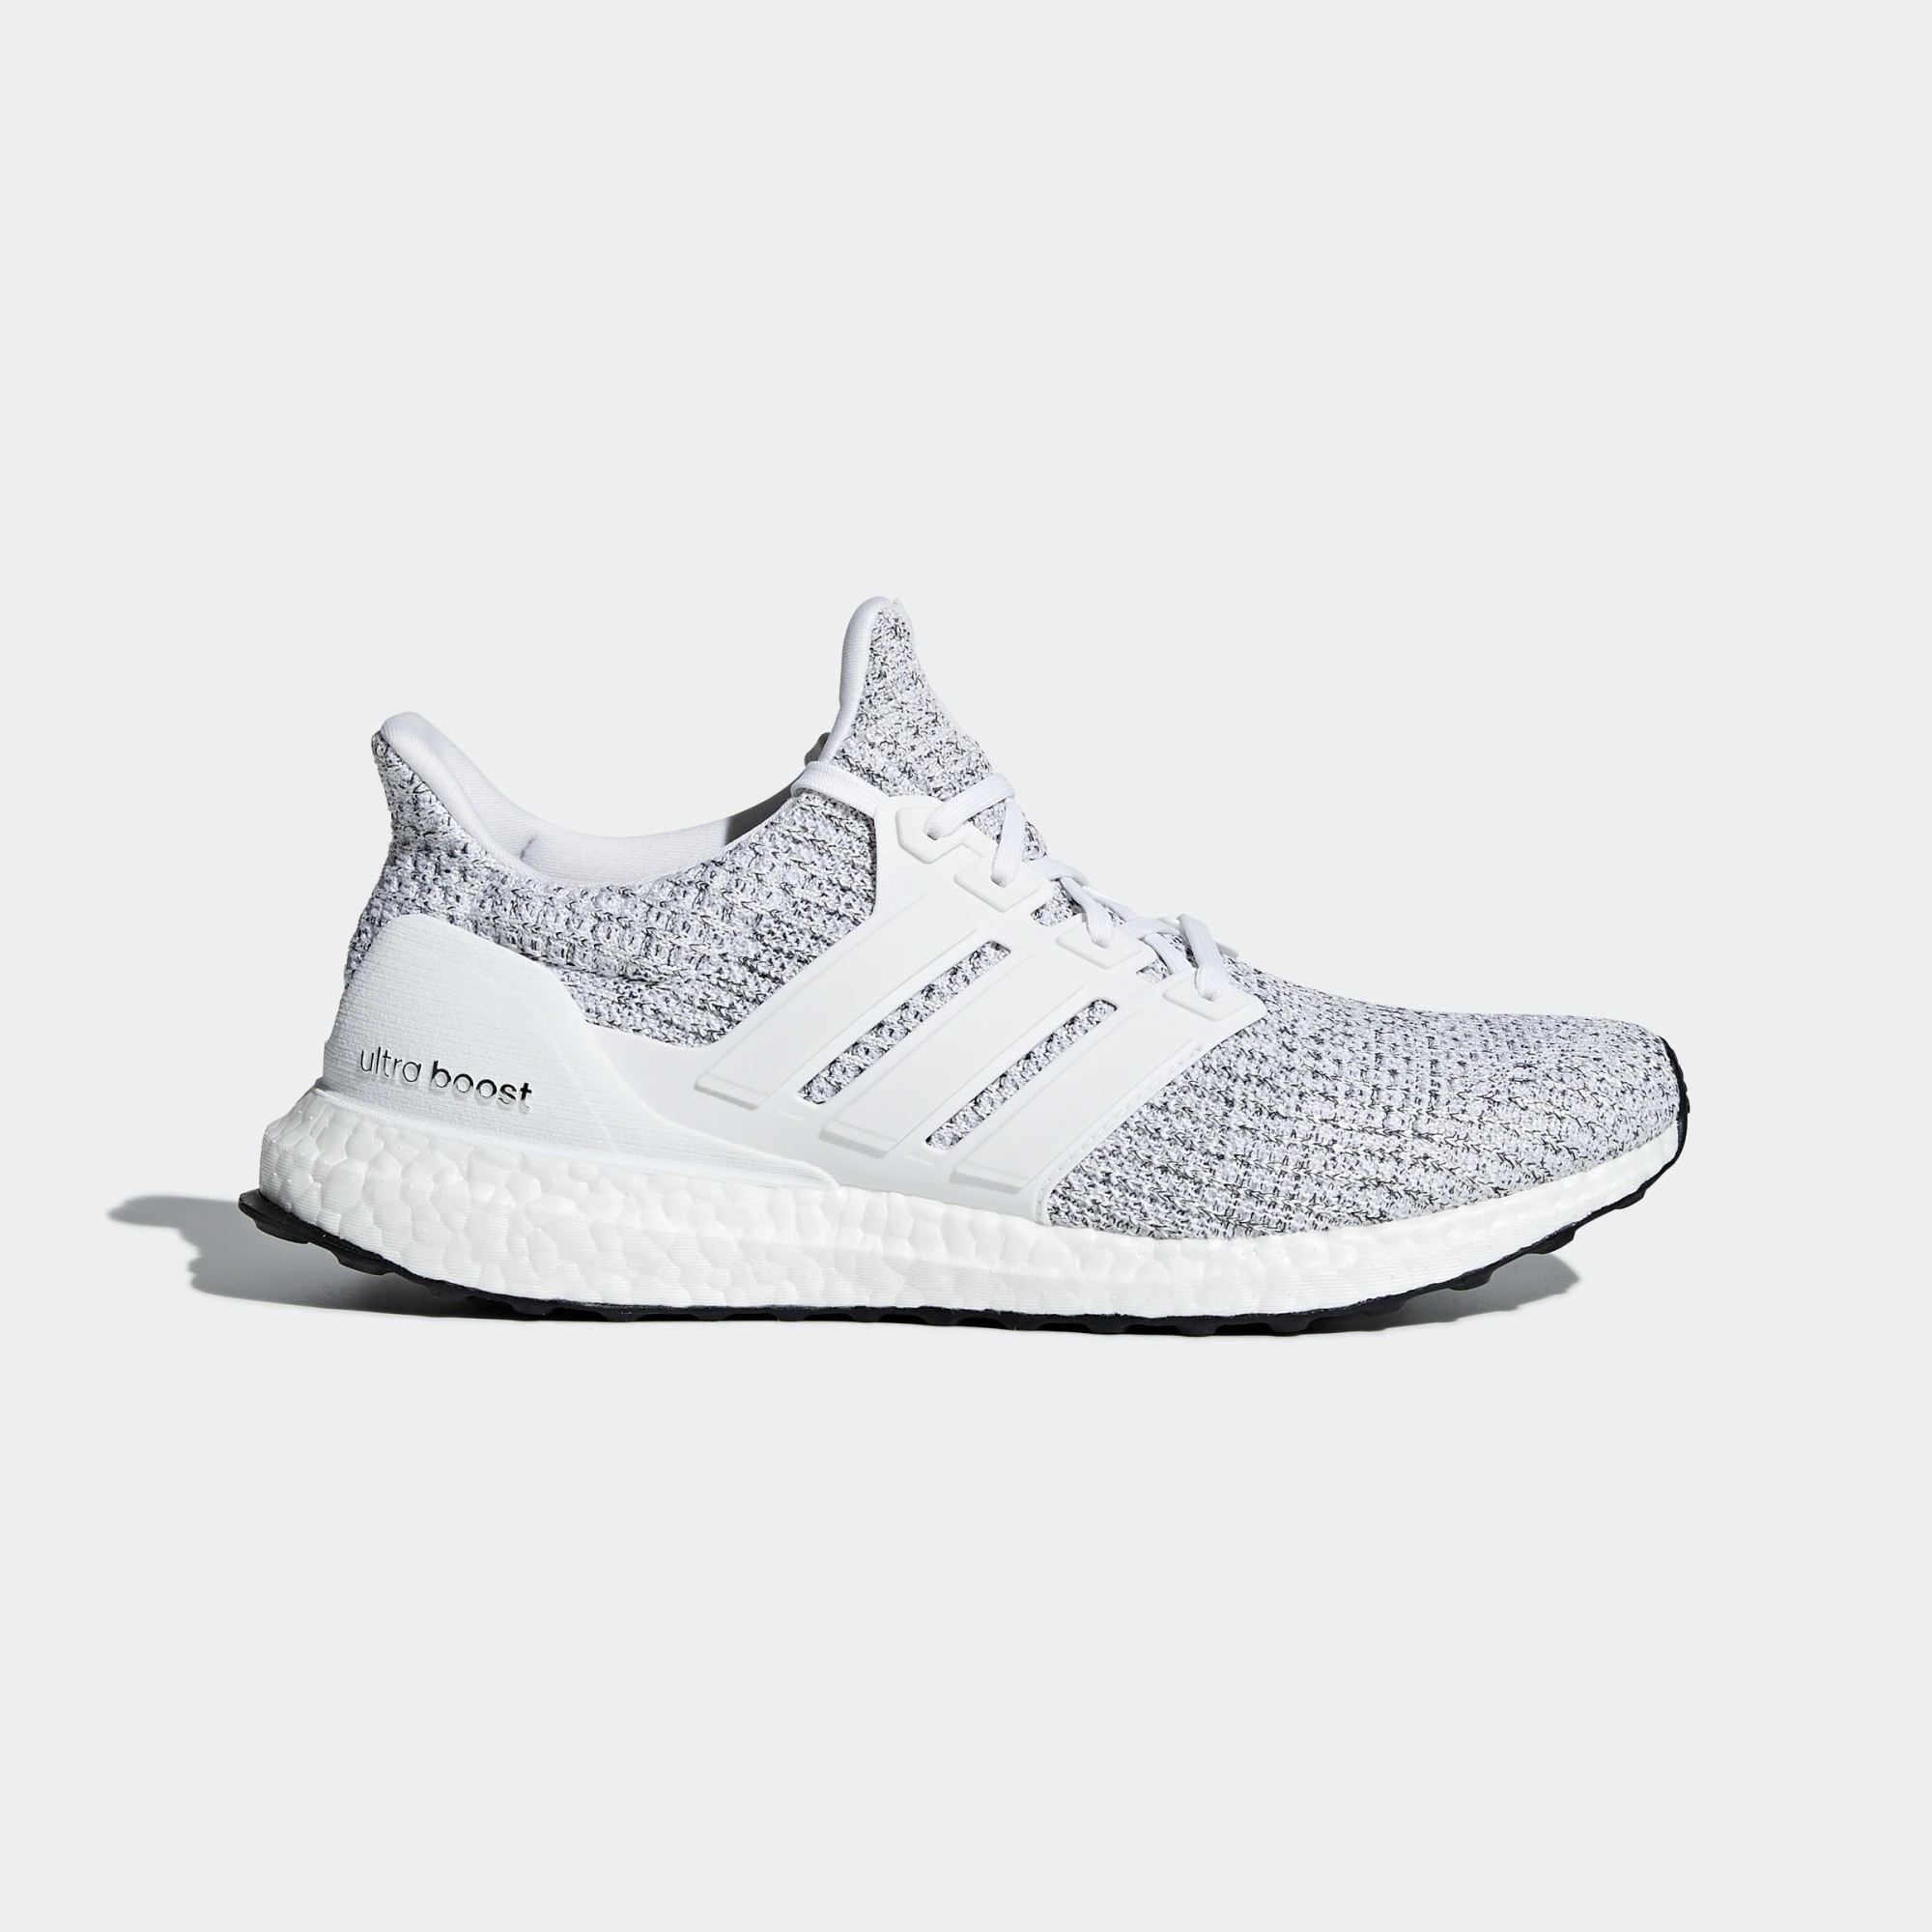 adidas F36155 Ultraboost Mens Running Shoe White/Grey/Black